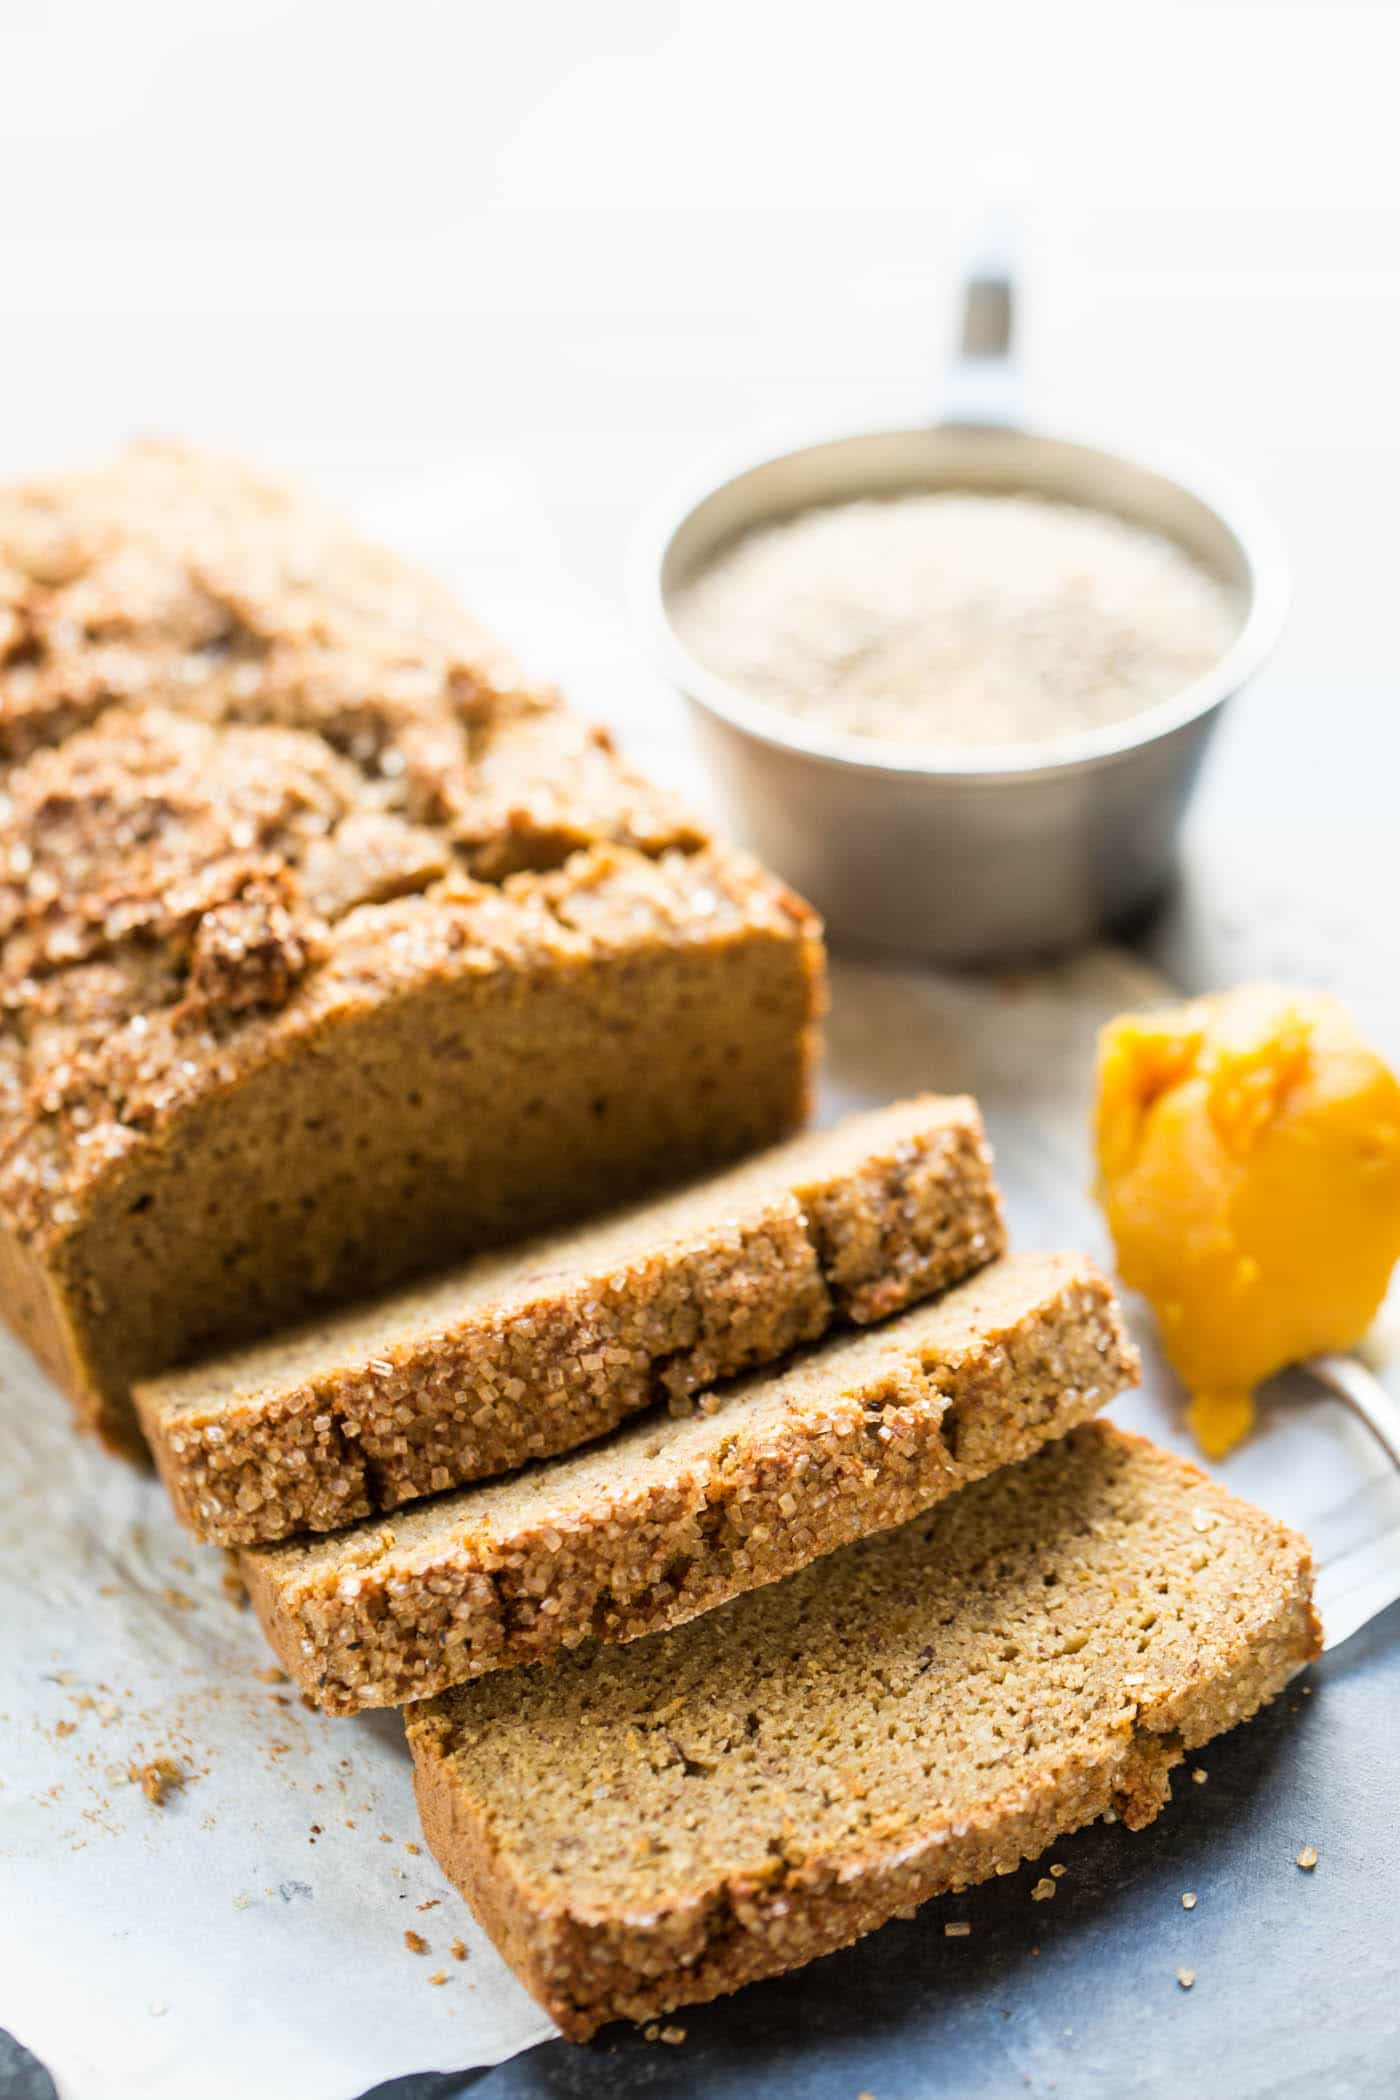 This is THE BEST healthy pumpkin bread made with quinoa flour + almond flour!